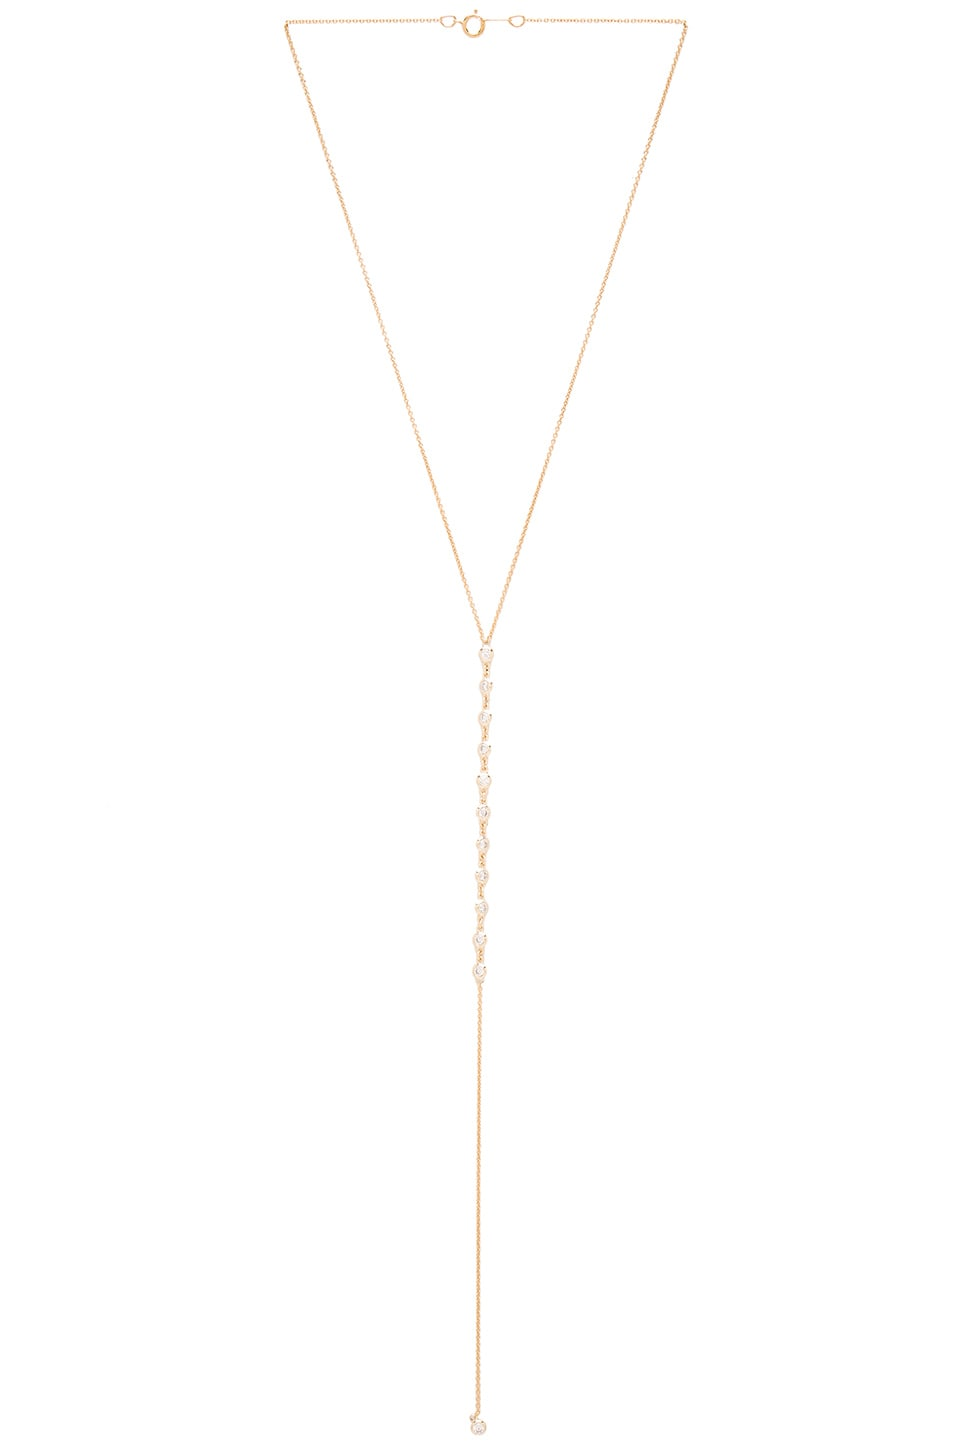 joolz by Martha Calvo Bezel Bar Lariat Necklace in Gold